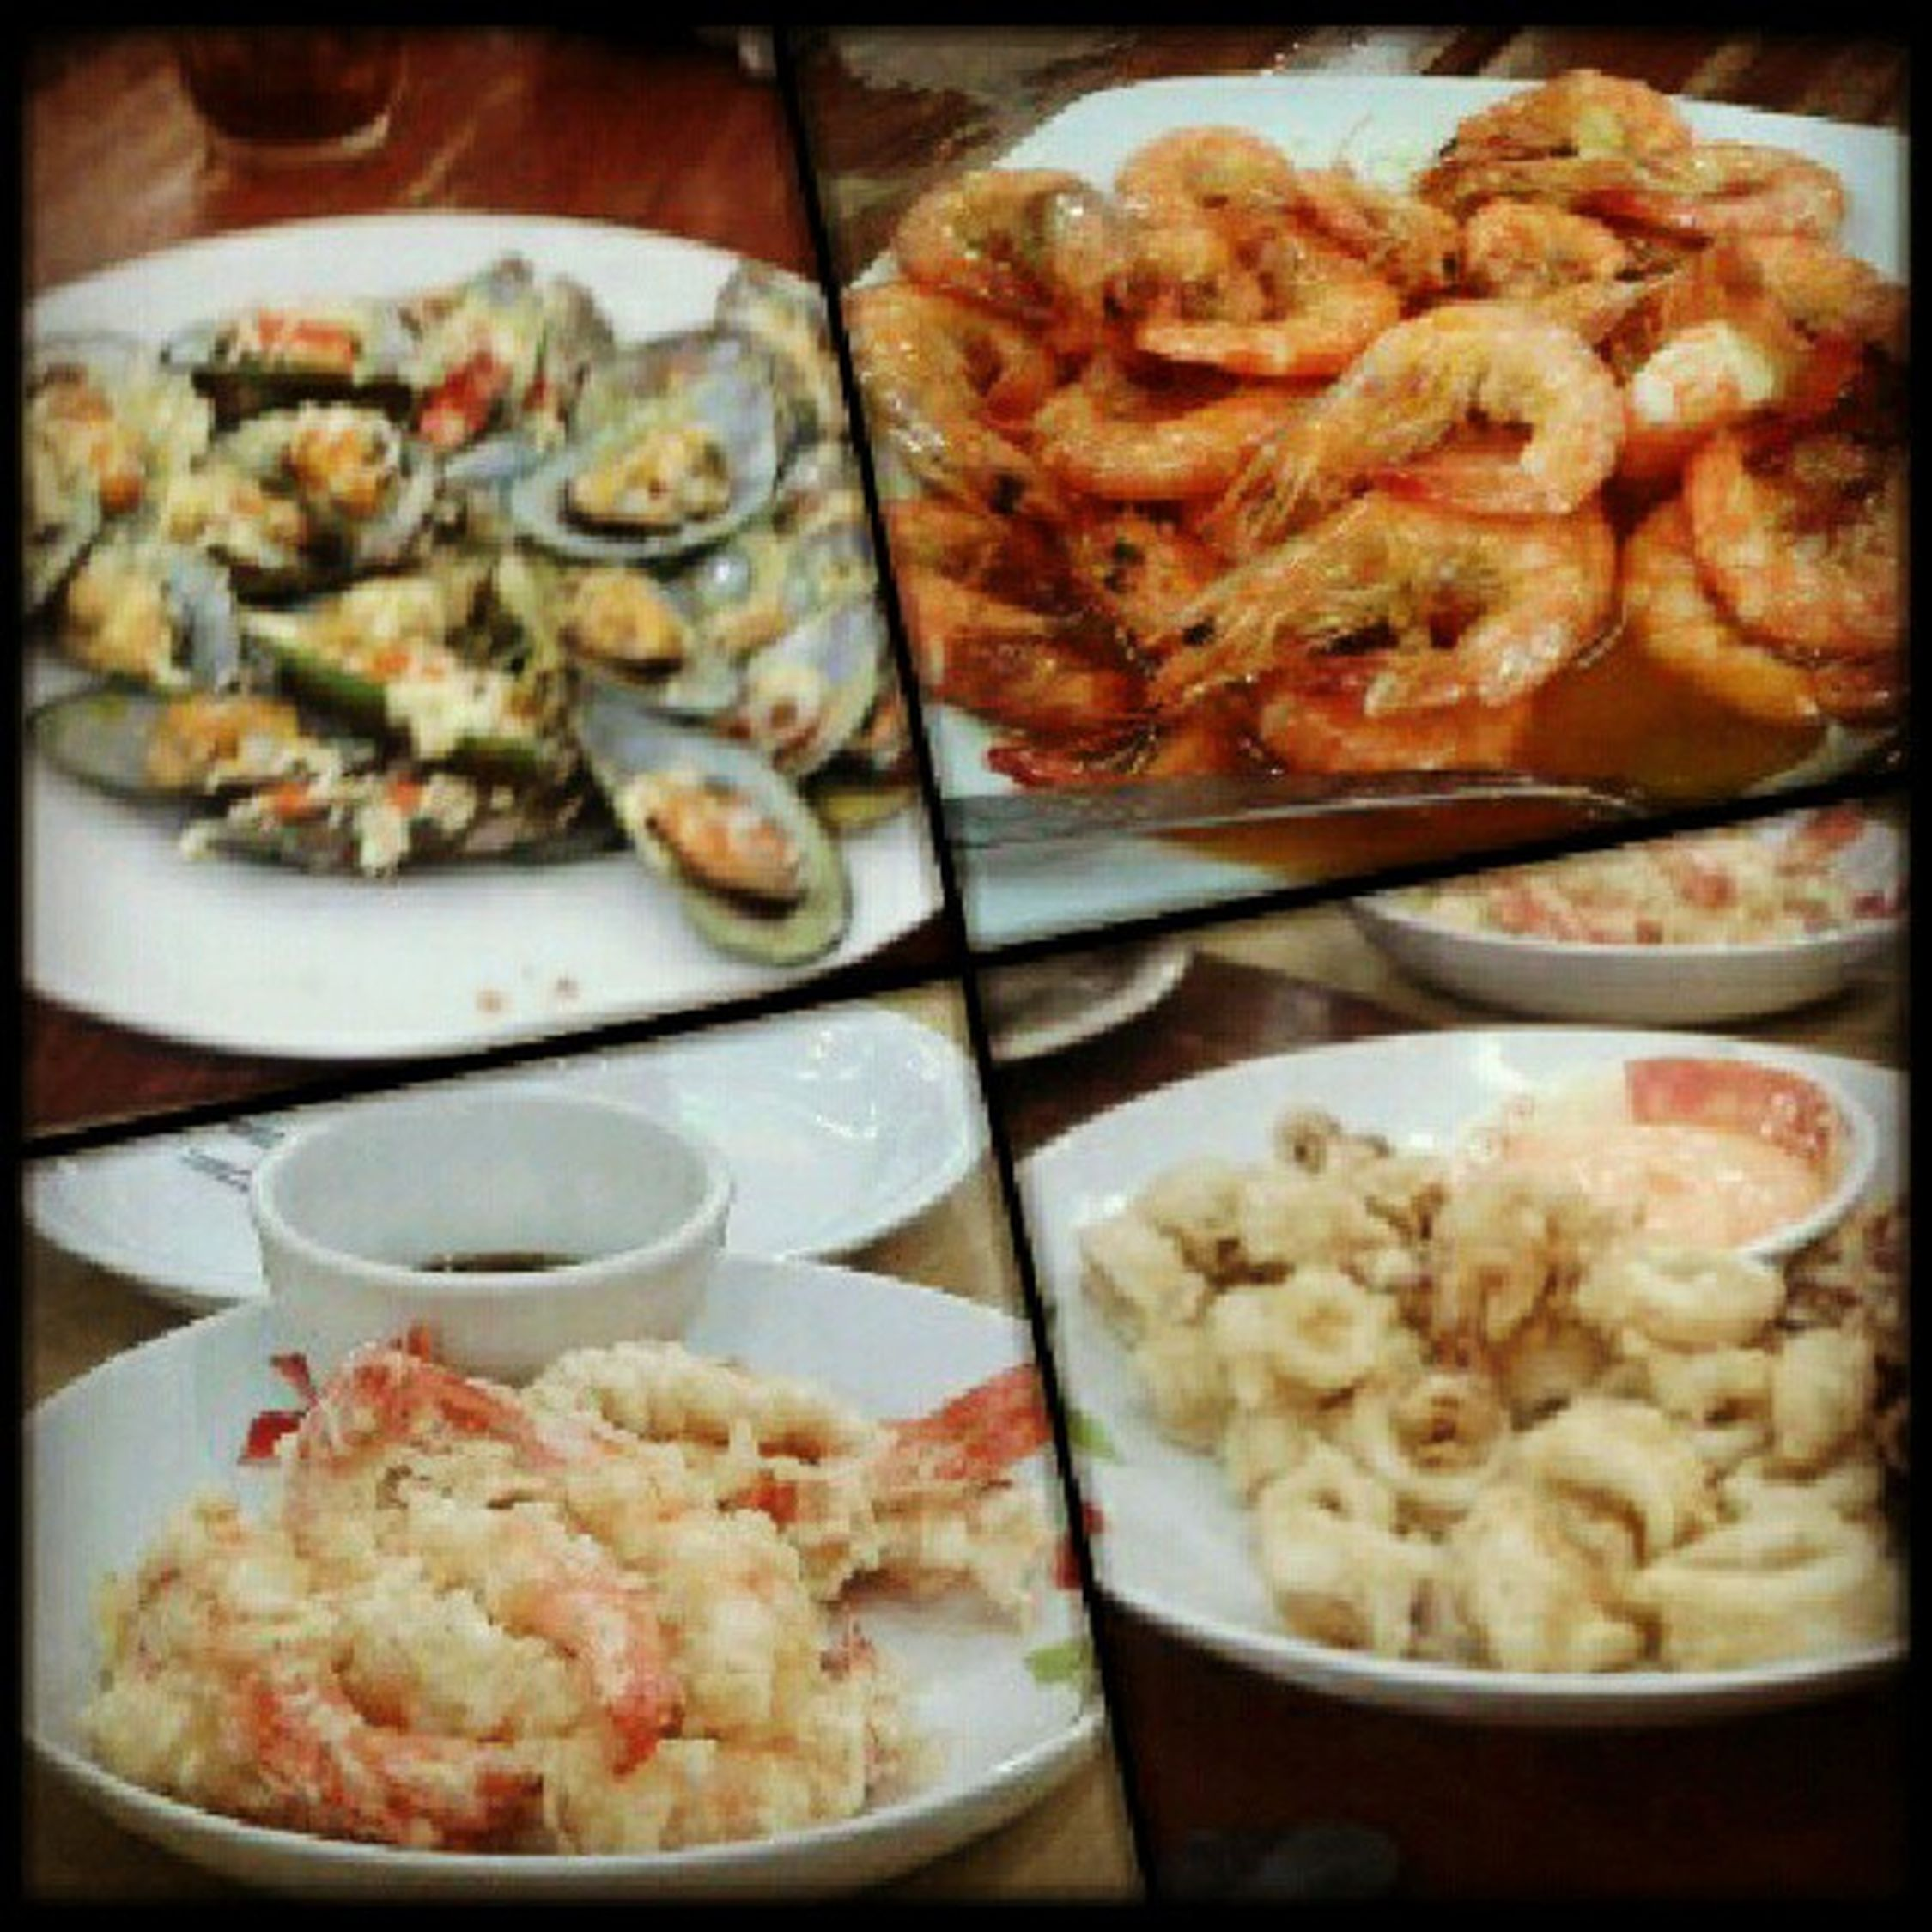 Ohh favorite :) Lateupload Bakedtahong Cheese Garlic calamares tempura buttered shrimp favorite seafood yummy food instafood foodtography foodstagram igersmanila